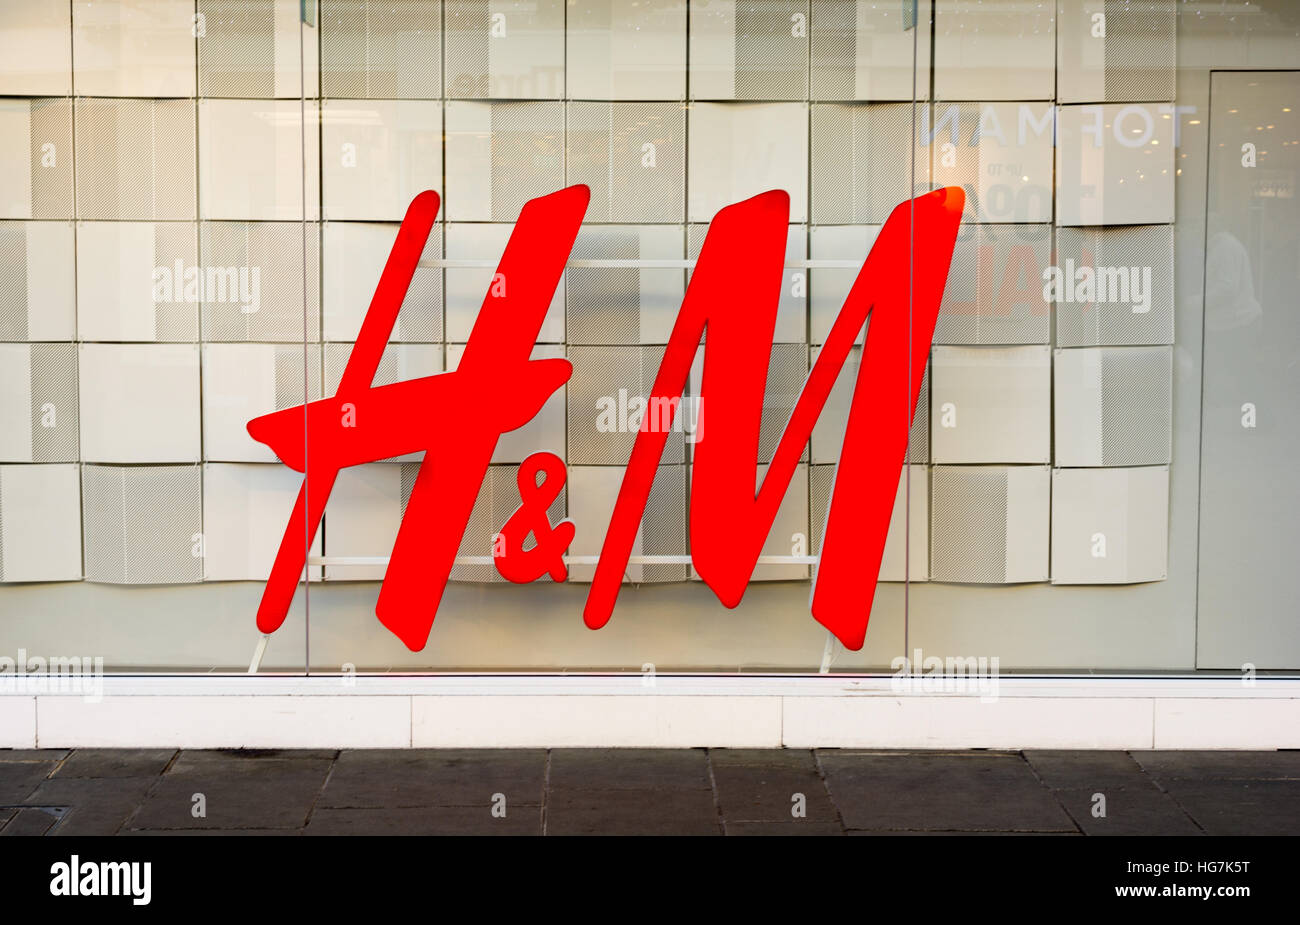 The logo of H&M, the Swedish fashion retailer, displayed large in a shop window. - Stock Image